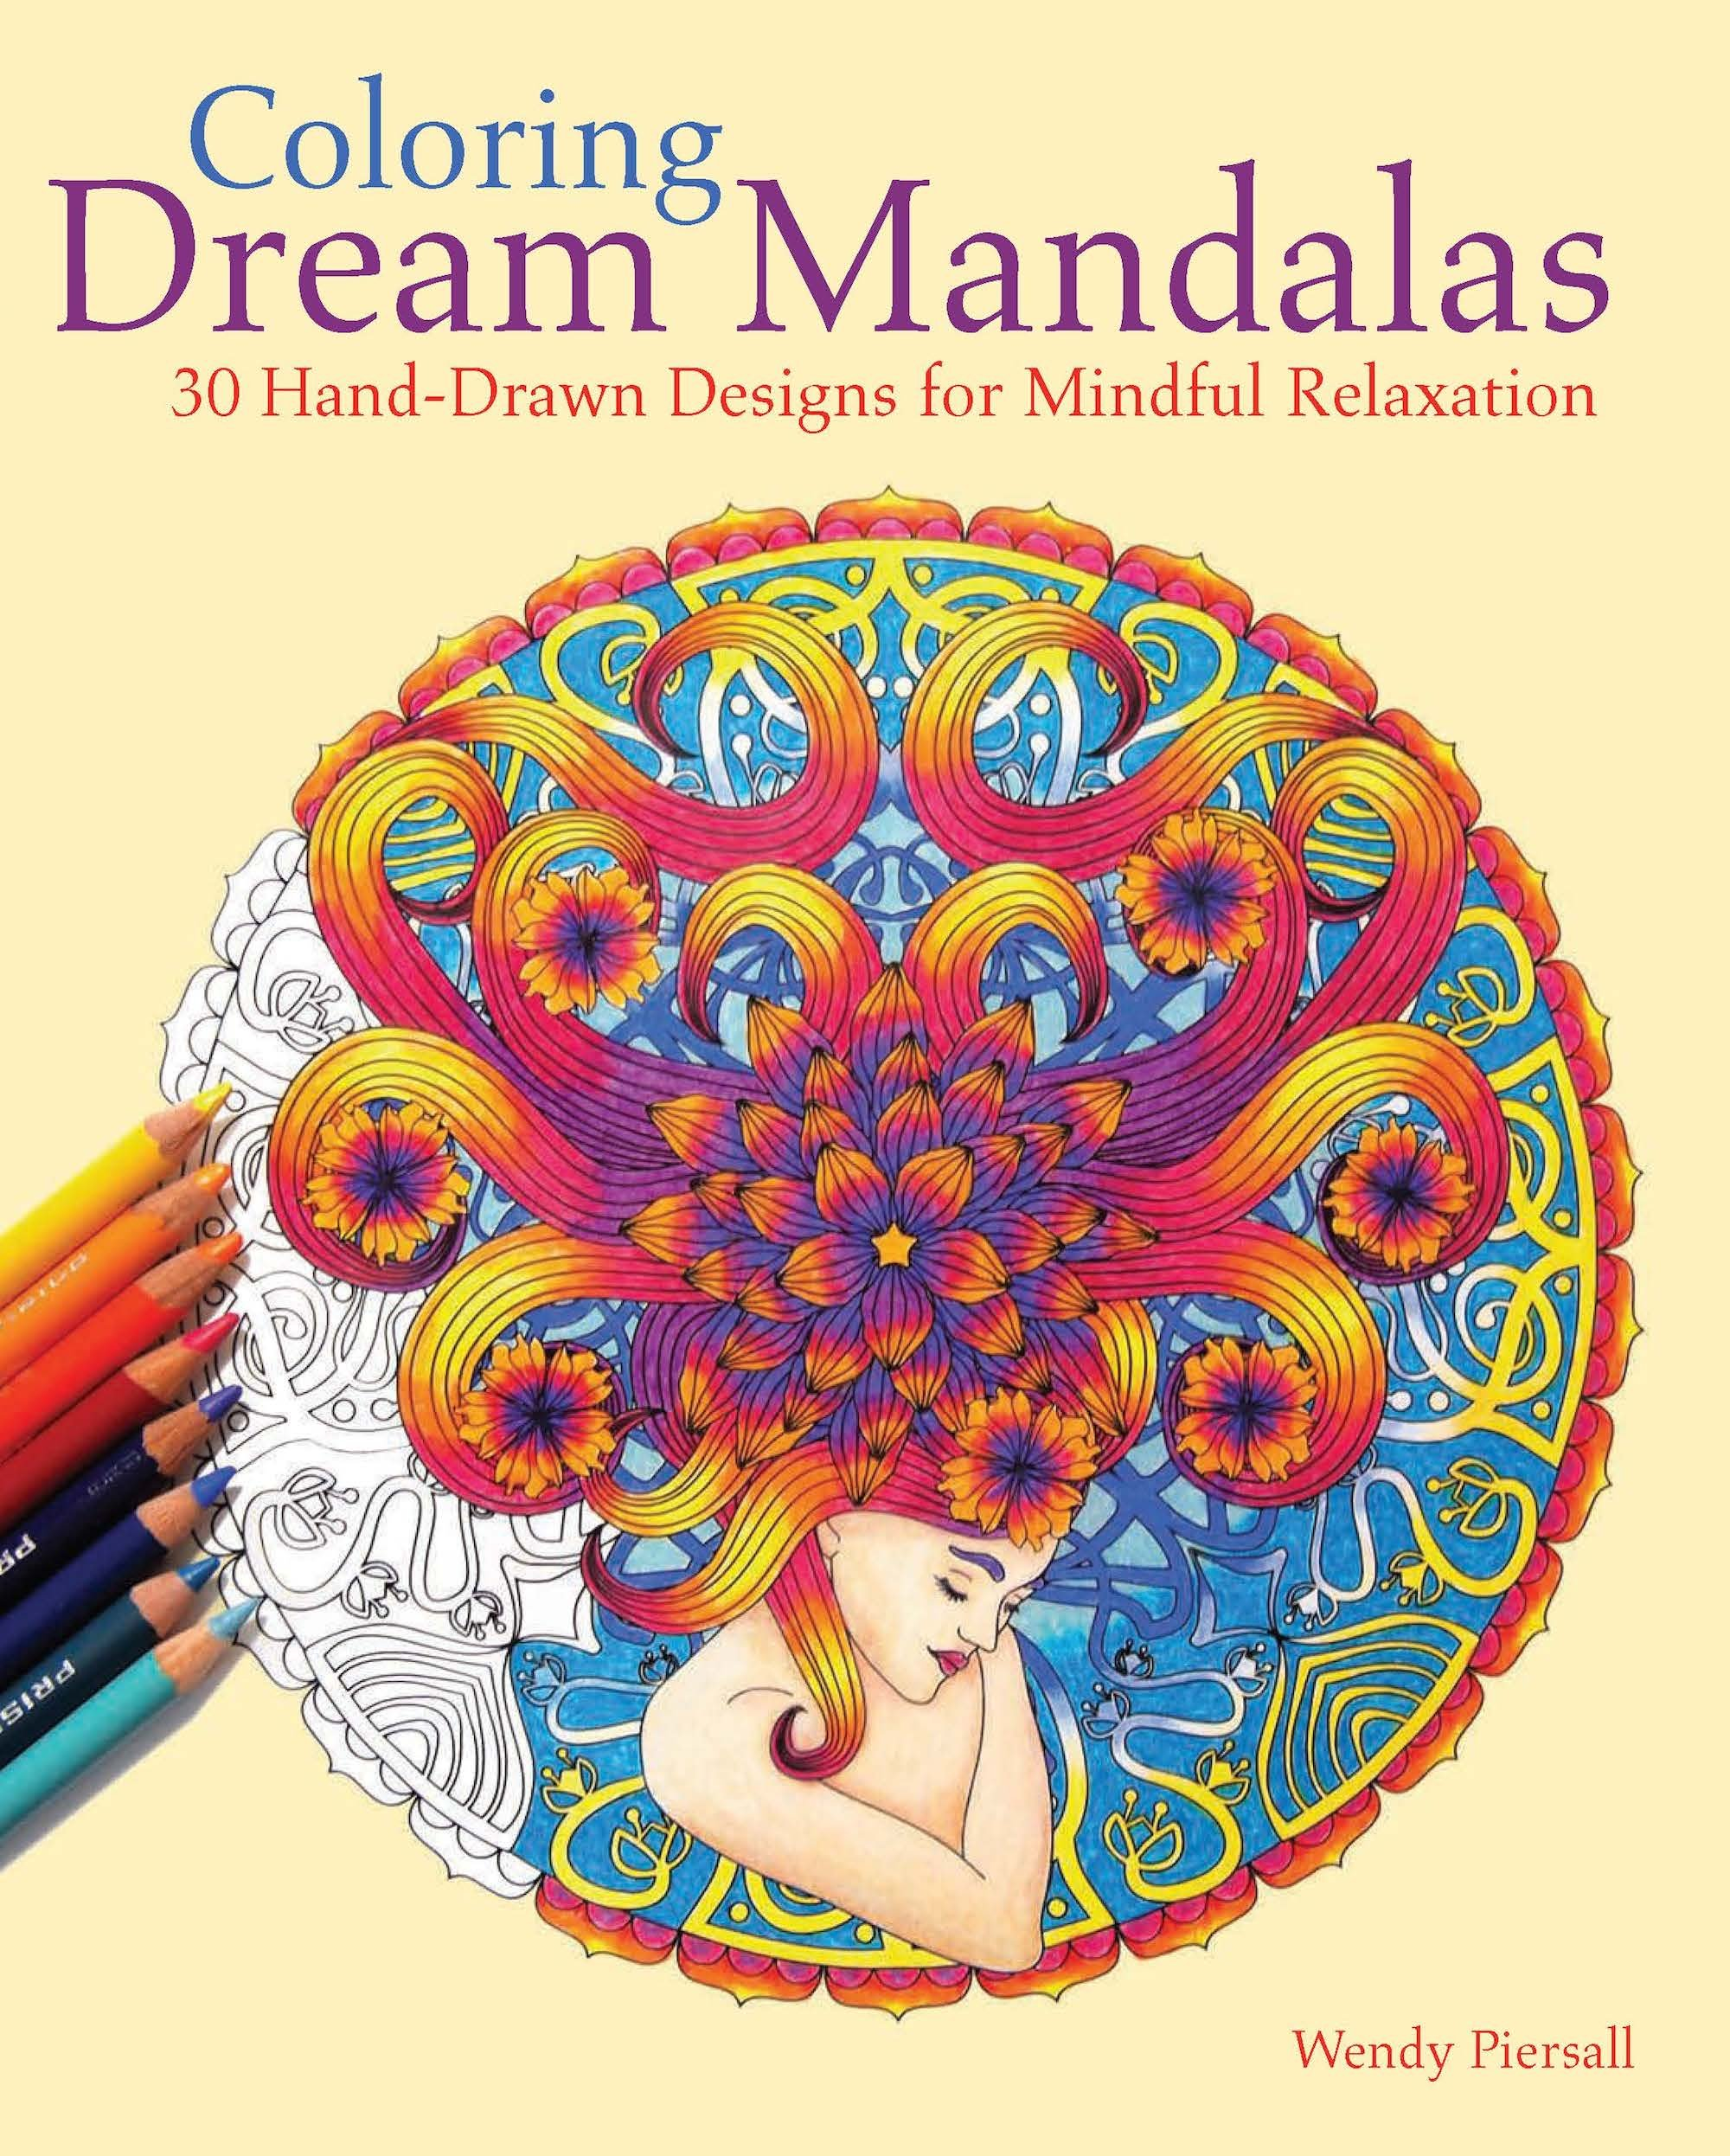 Mandala coloring pages amazon - Coloring Dream Mandalas 30 Hand Drawn Designs For Mindful Relaxation Wendy Piersall 9781612435299 Amazon Com Books